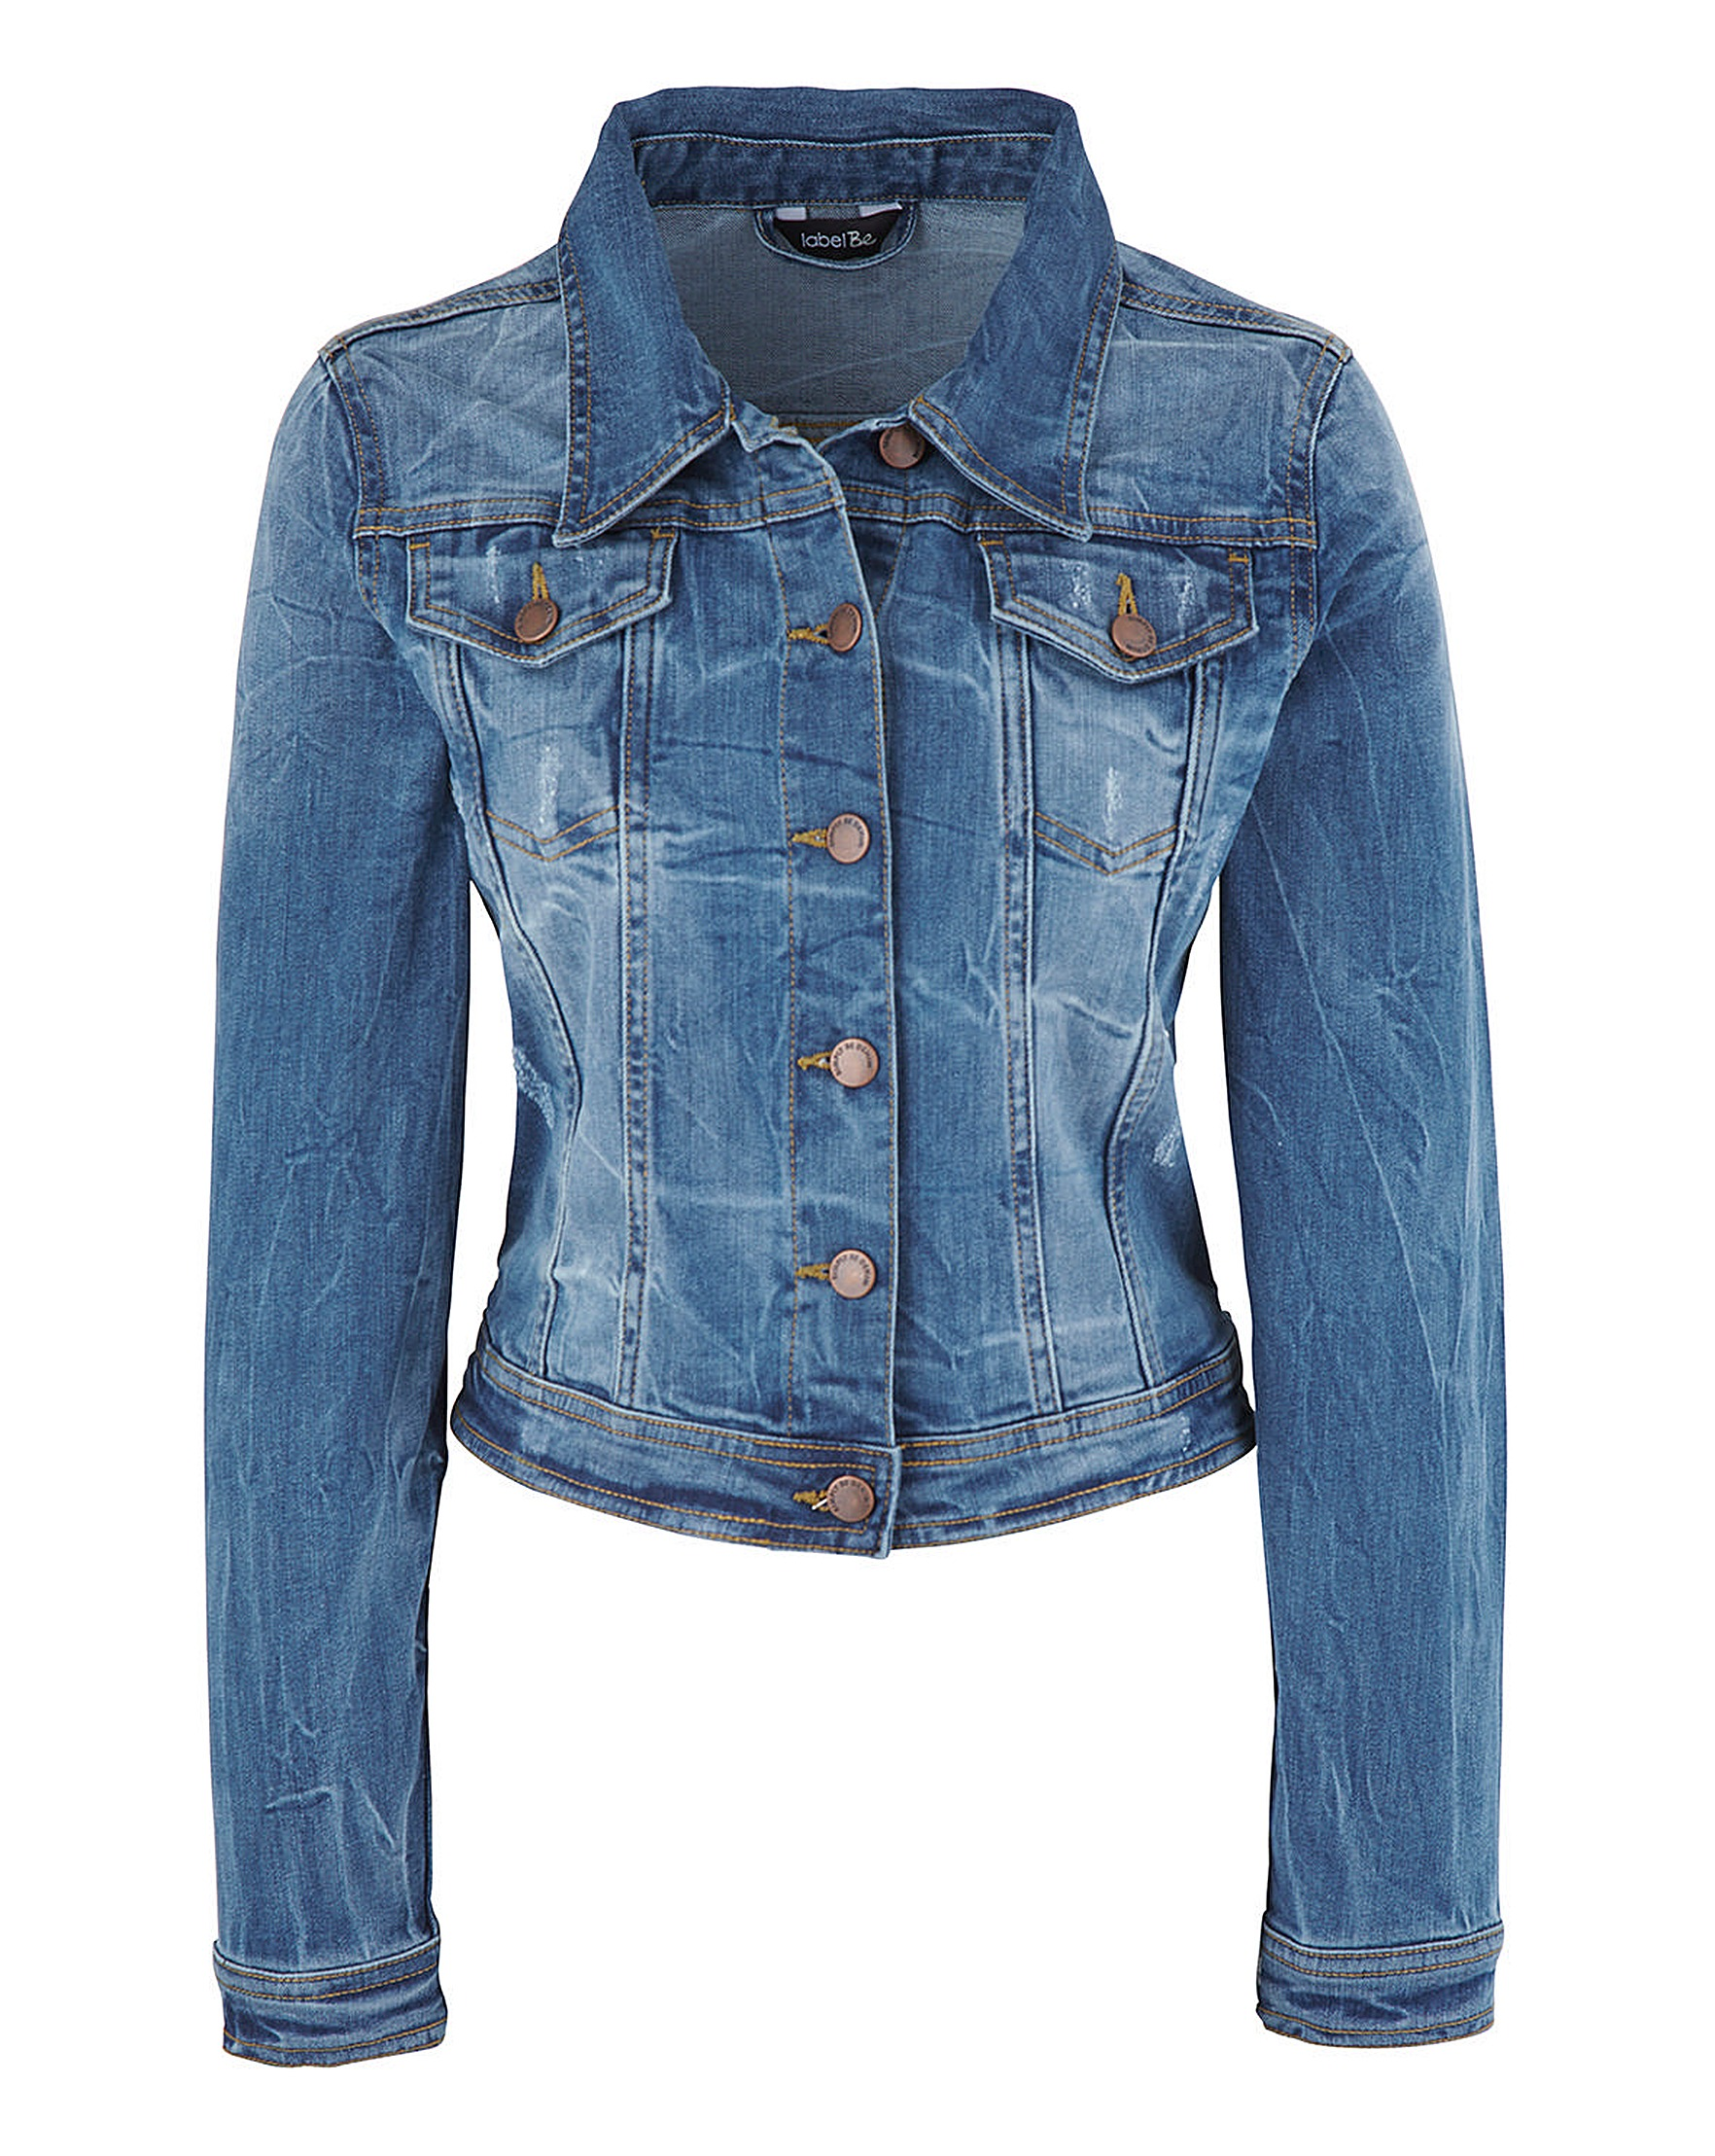 Stonewash Denim Jacket | Fashion World